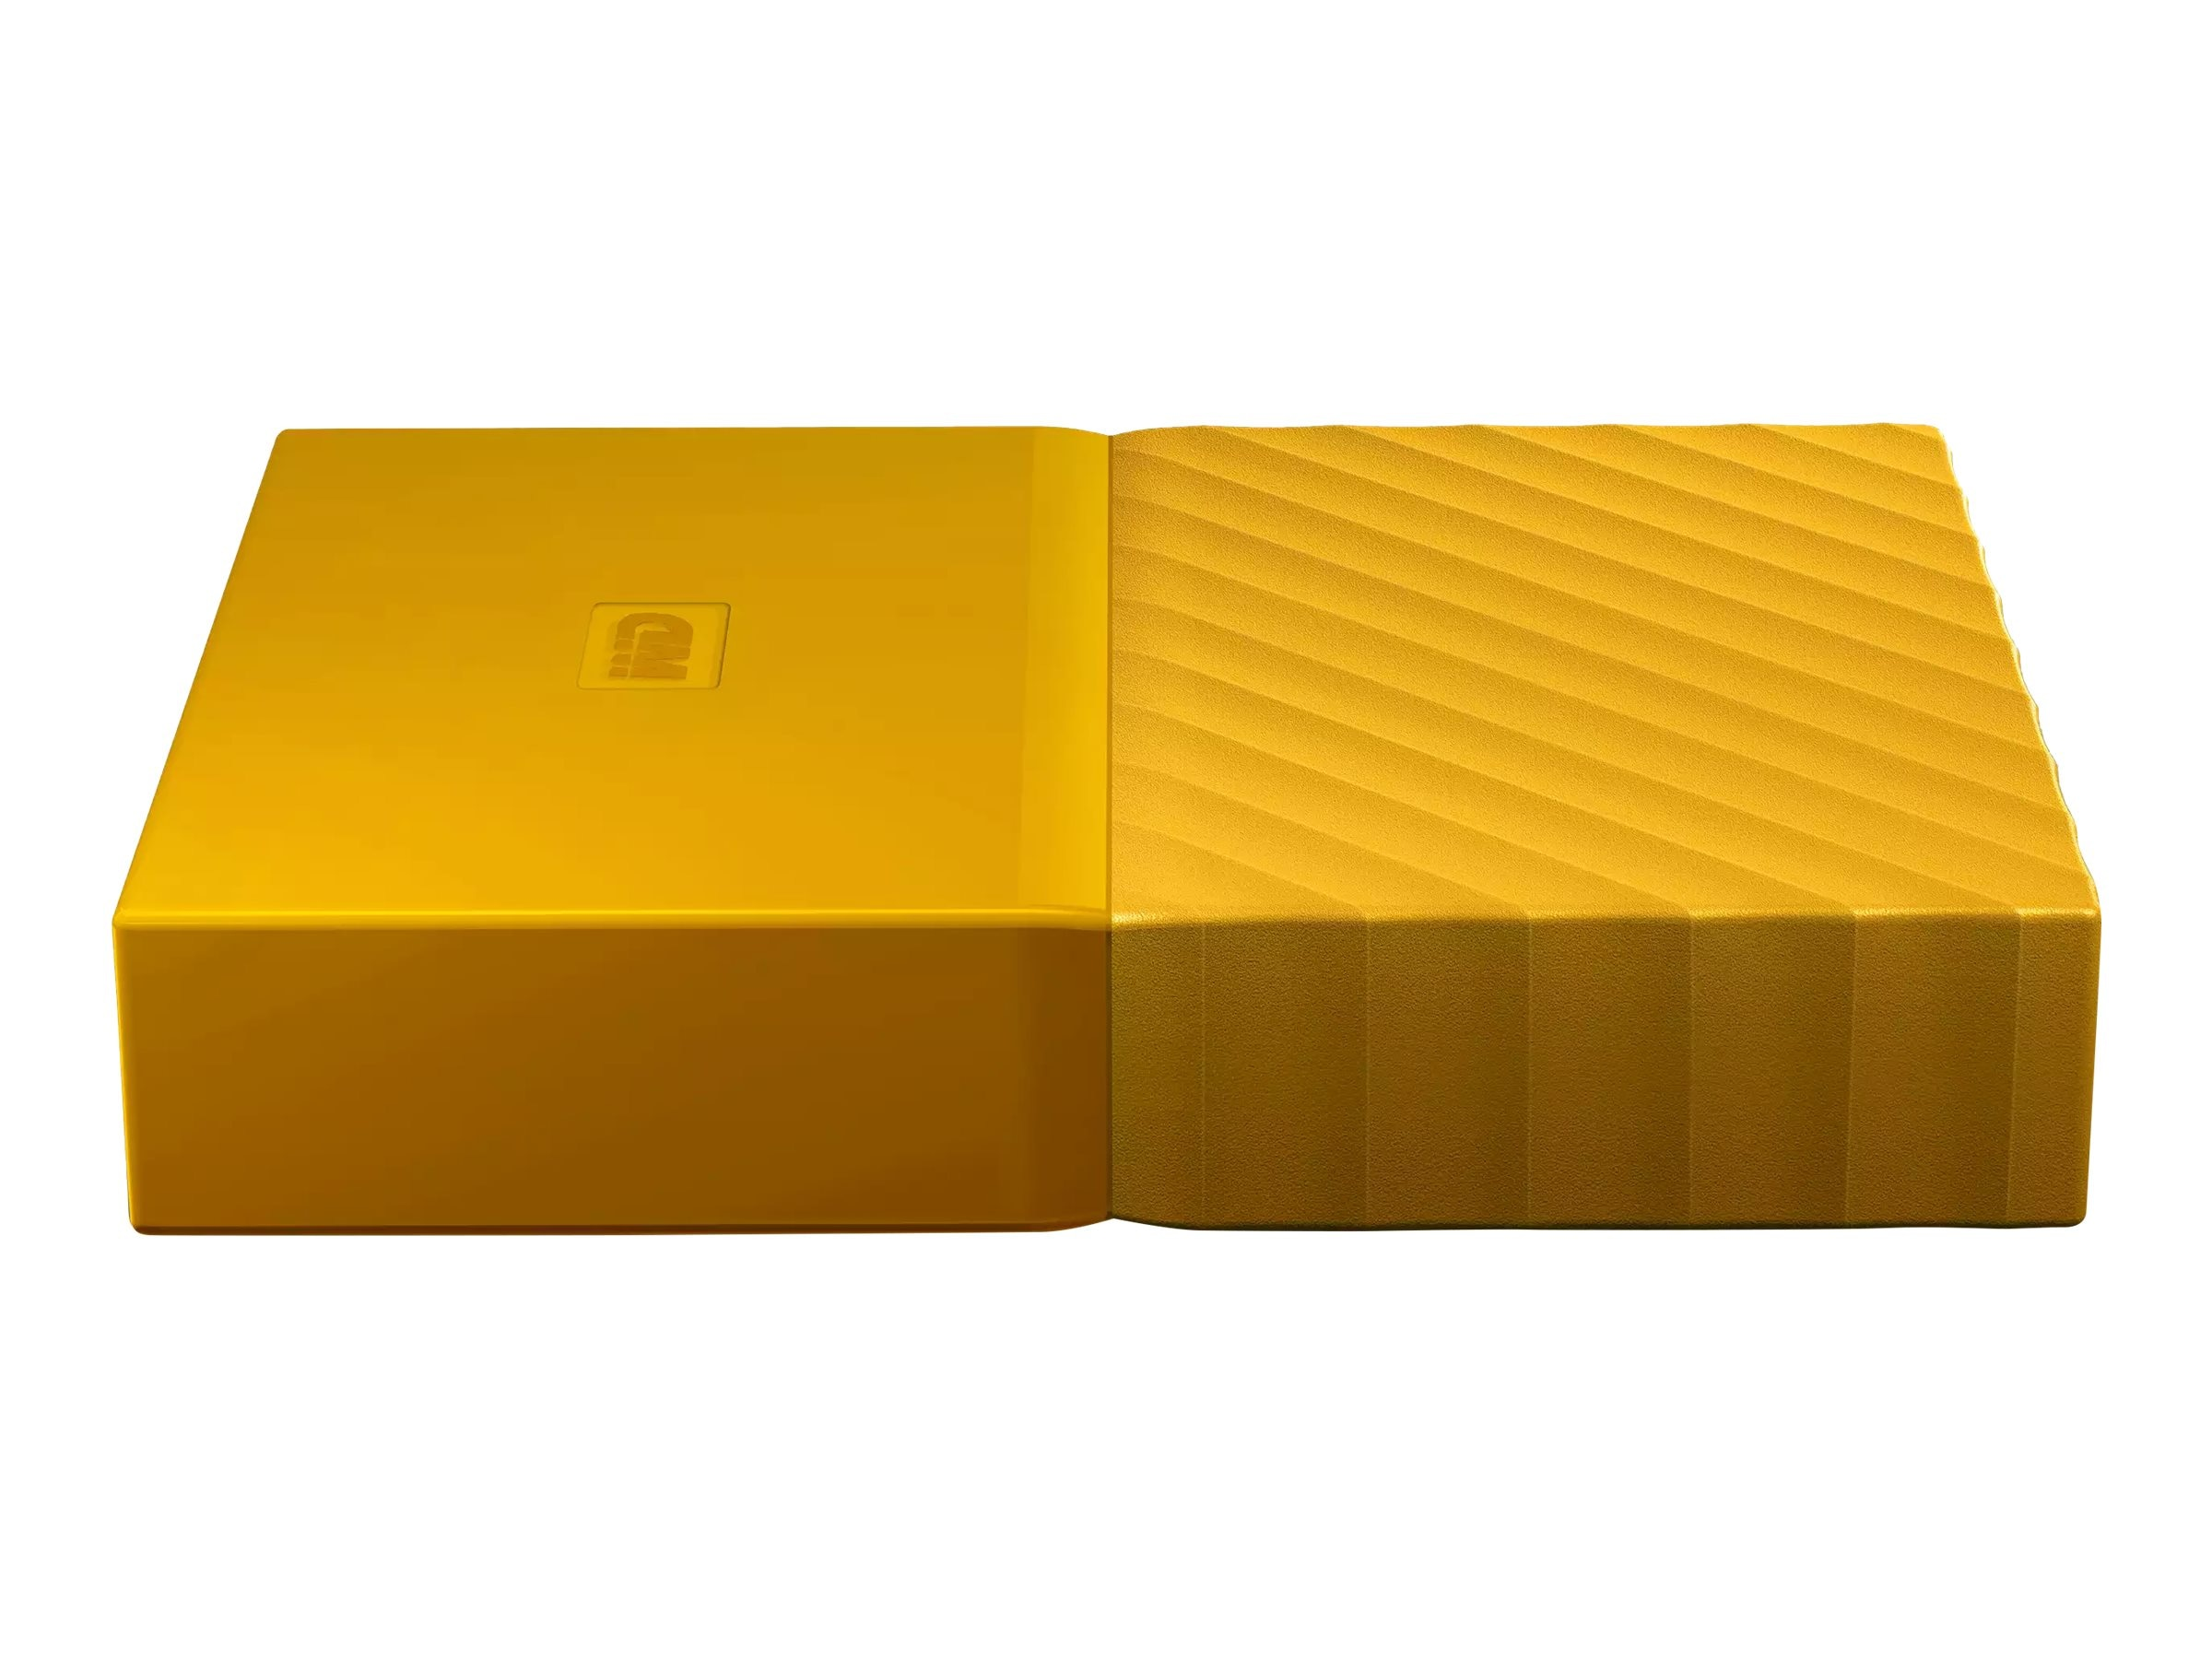 WD 4TB My Passport USB 3.0 Portable Hard Drive - Yellow, WDBYFT0040BYL-WESN